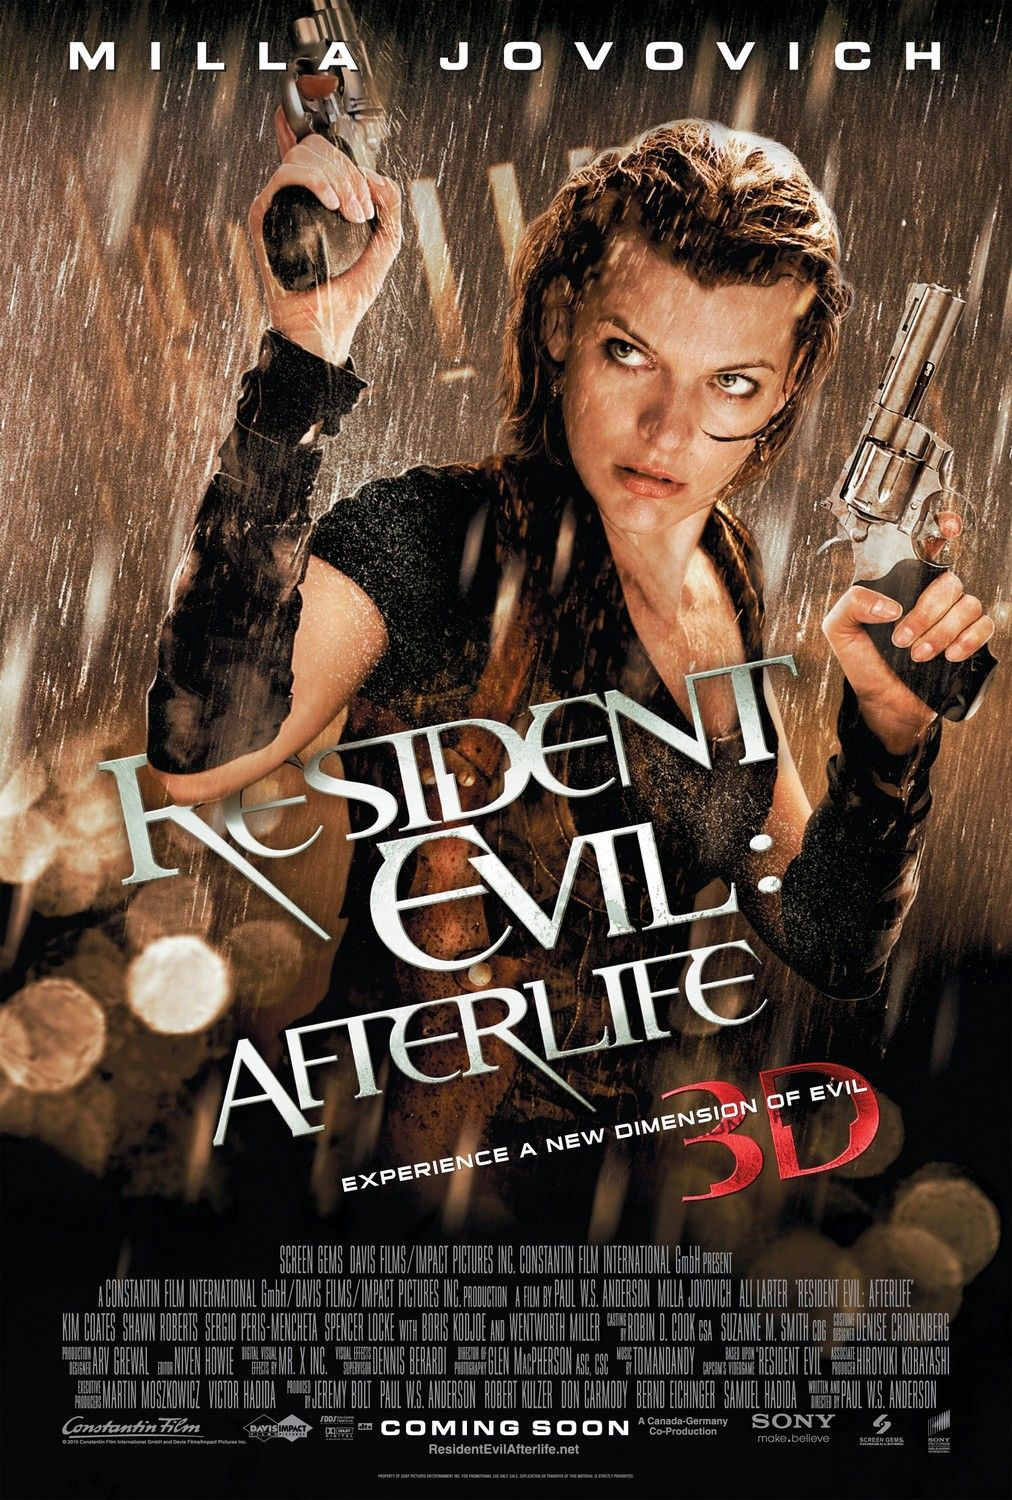 Resident Evil Afterlife (2010) - film poster